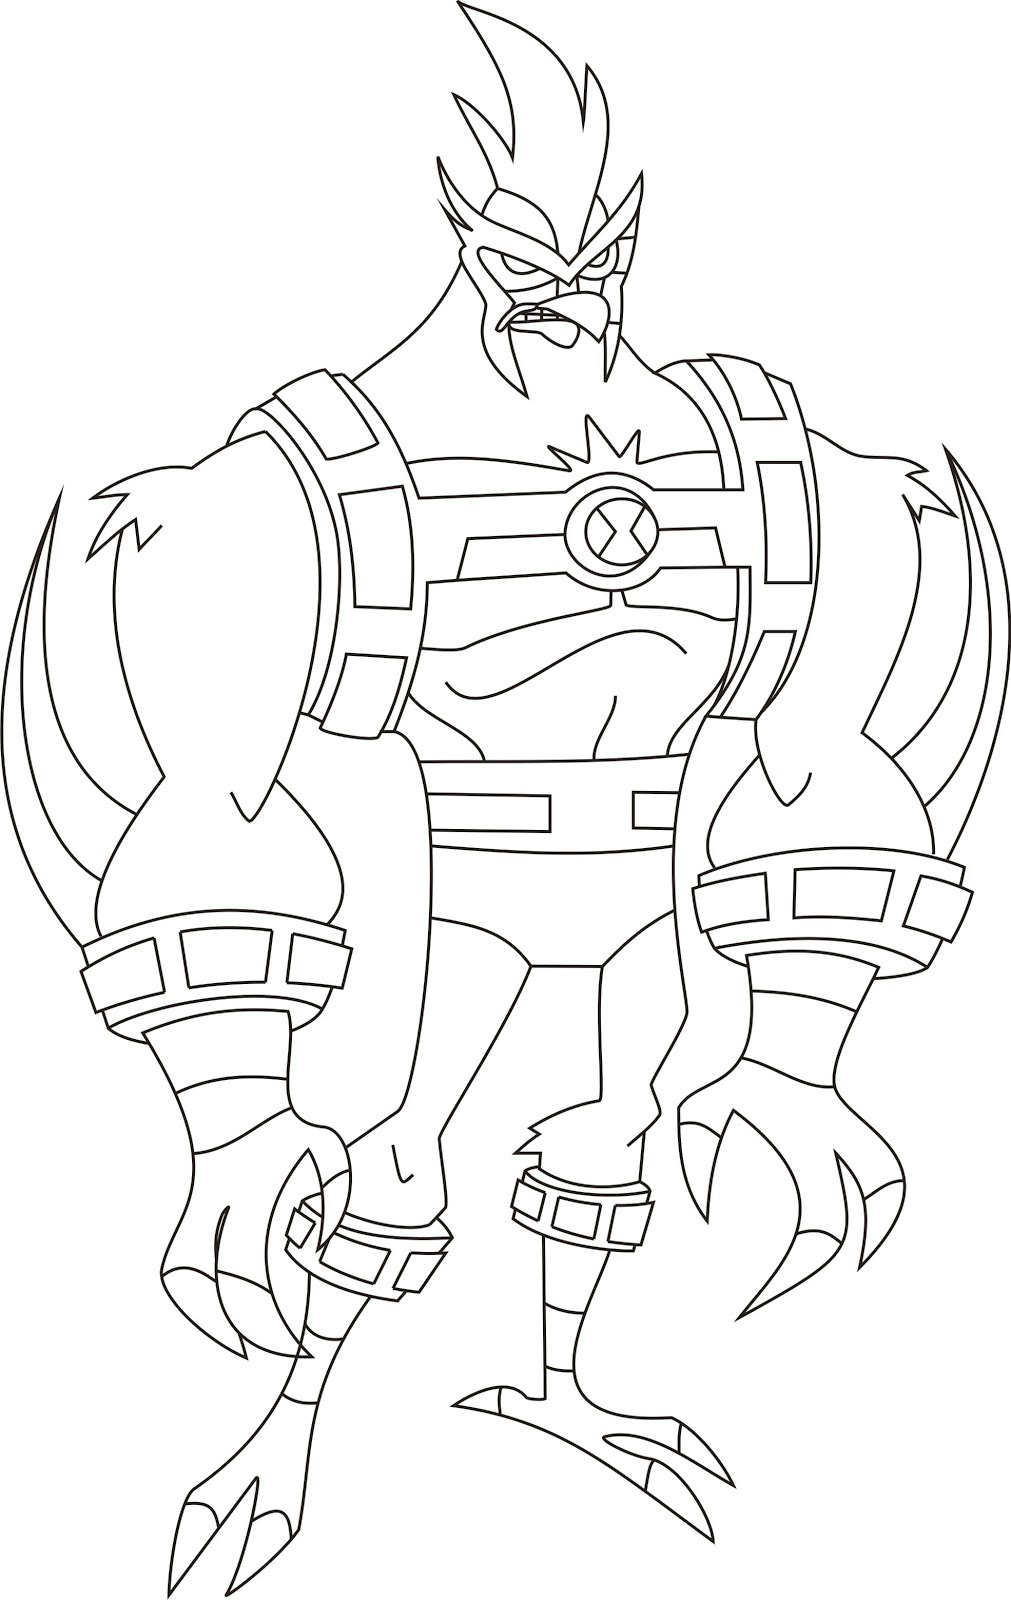 This is a picture of Smart ben 10 coloring sheets